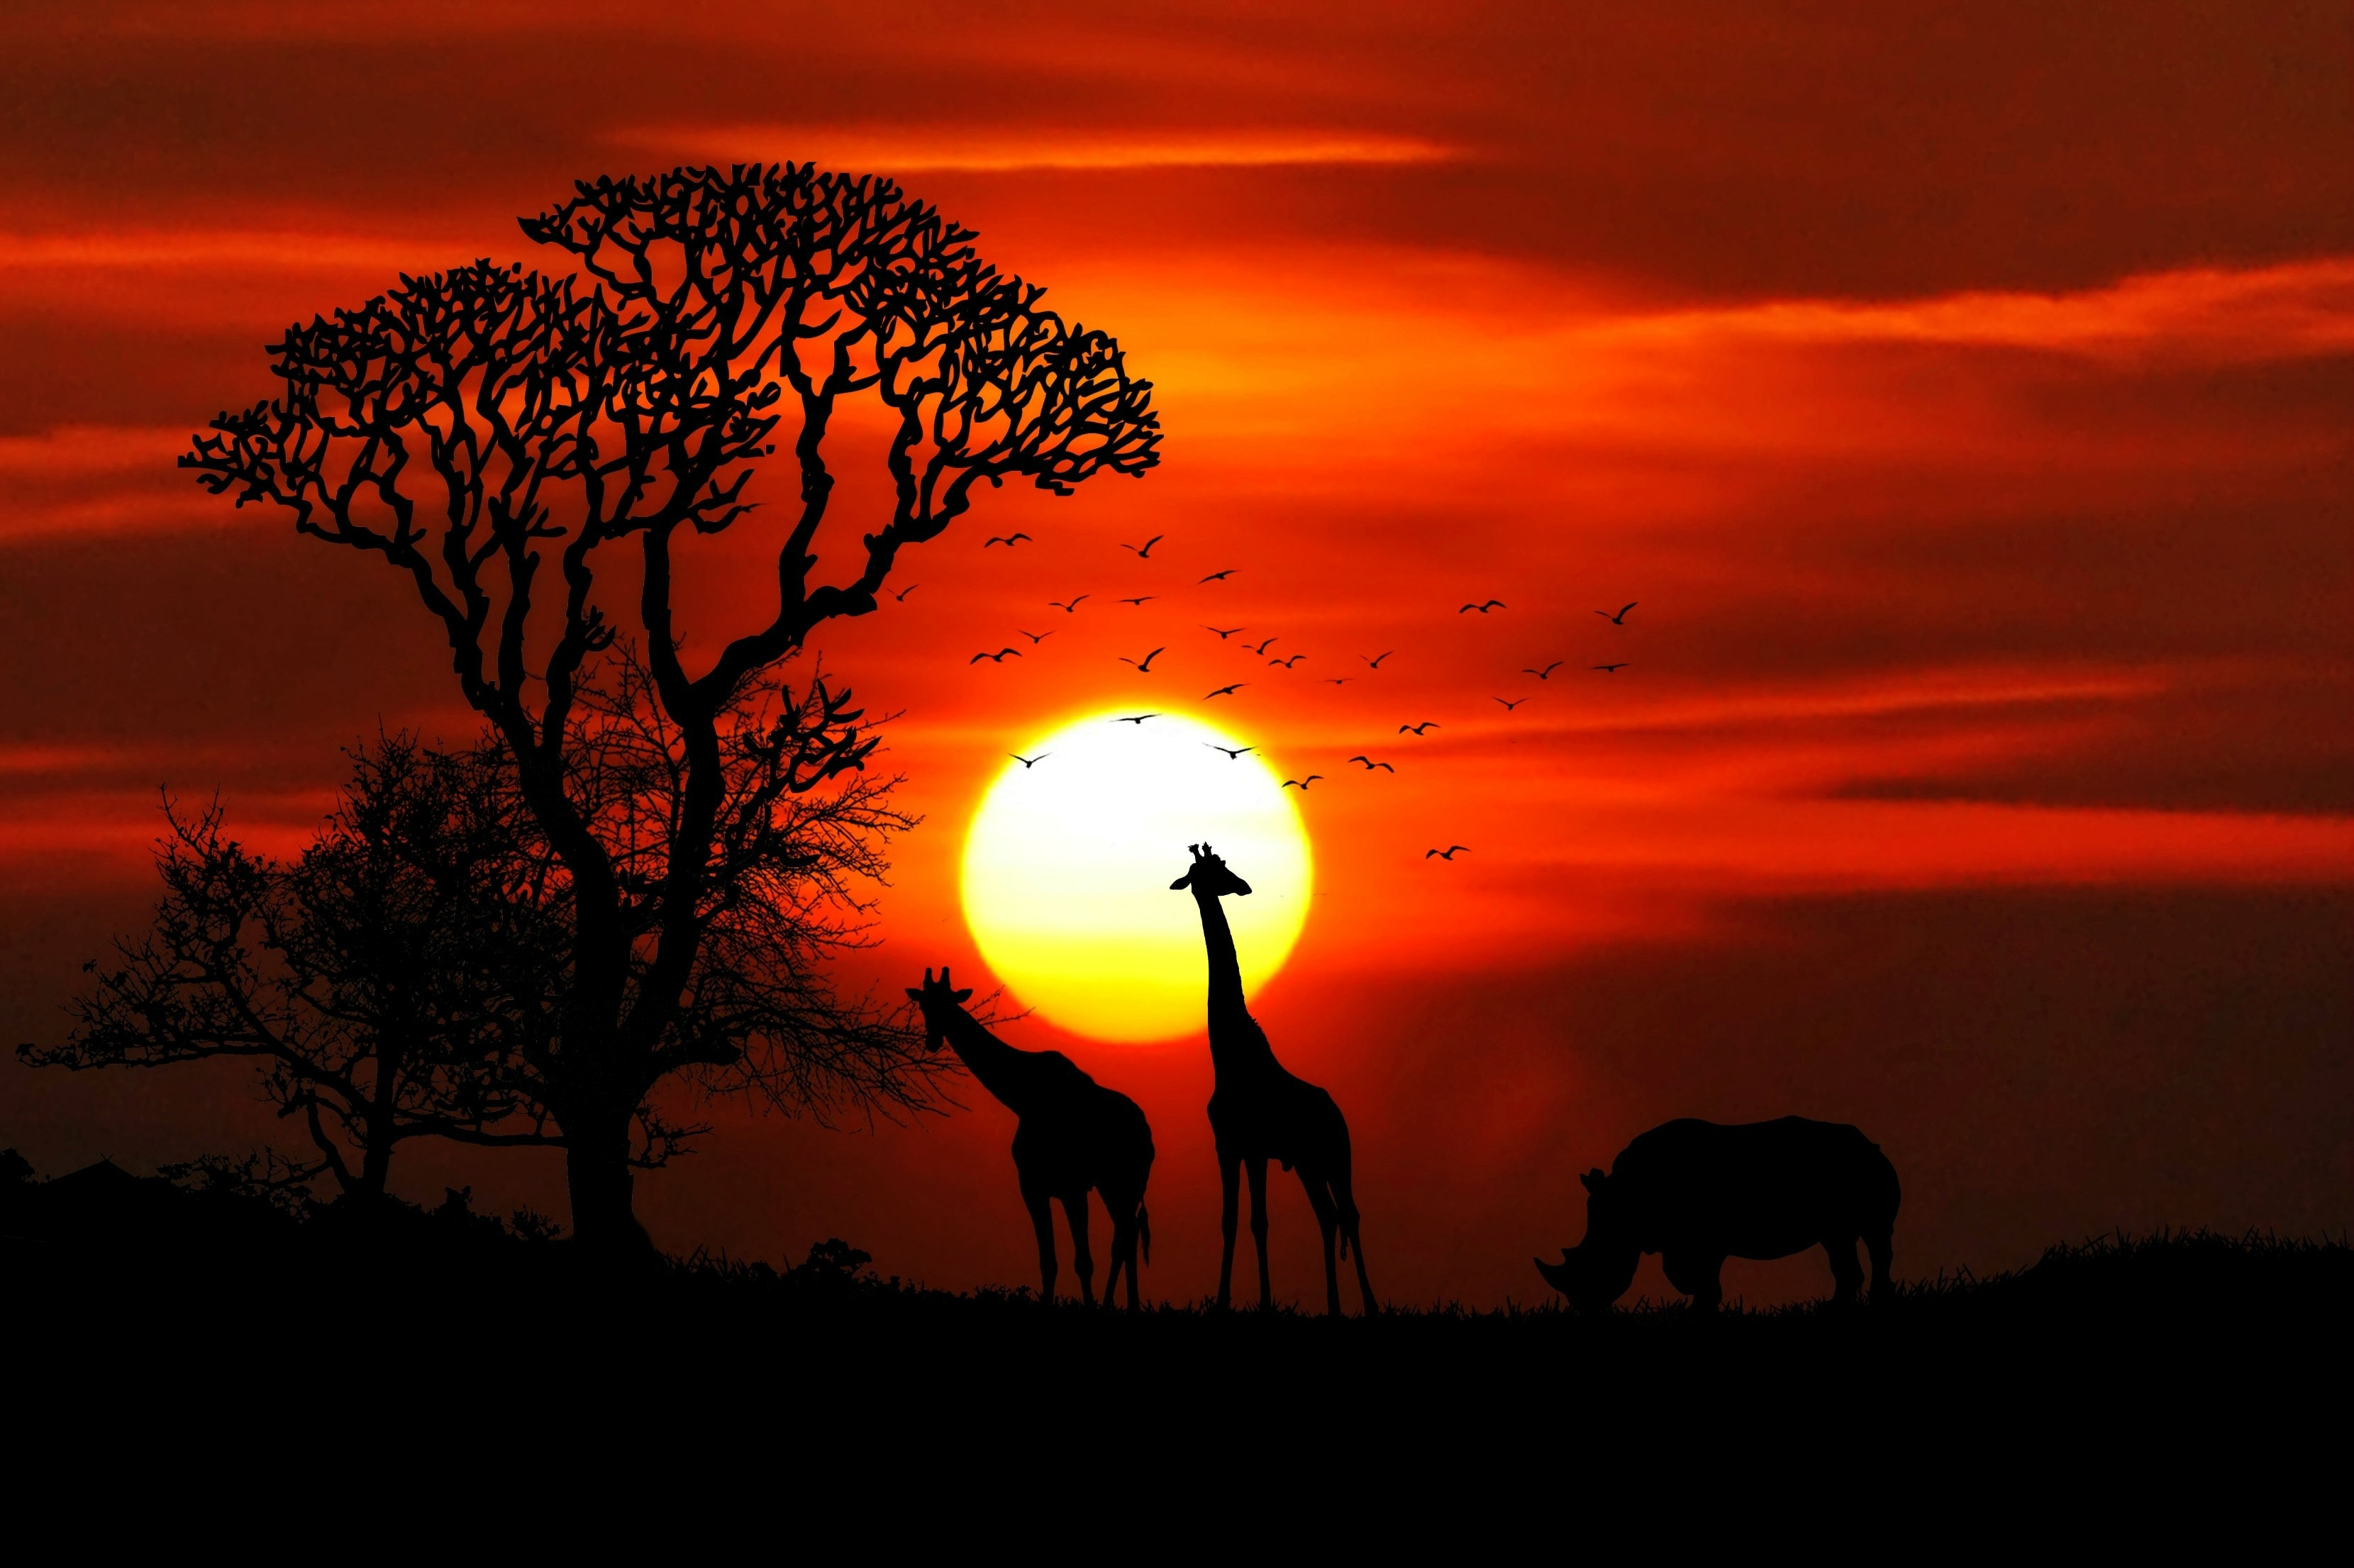 Silhouette Photography of Two Giraffe and Rhinoceros during